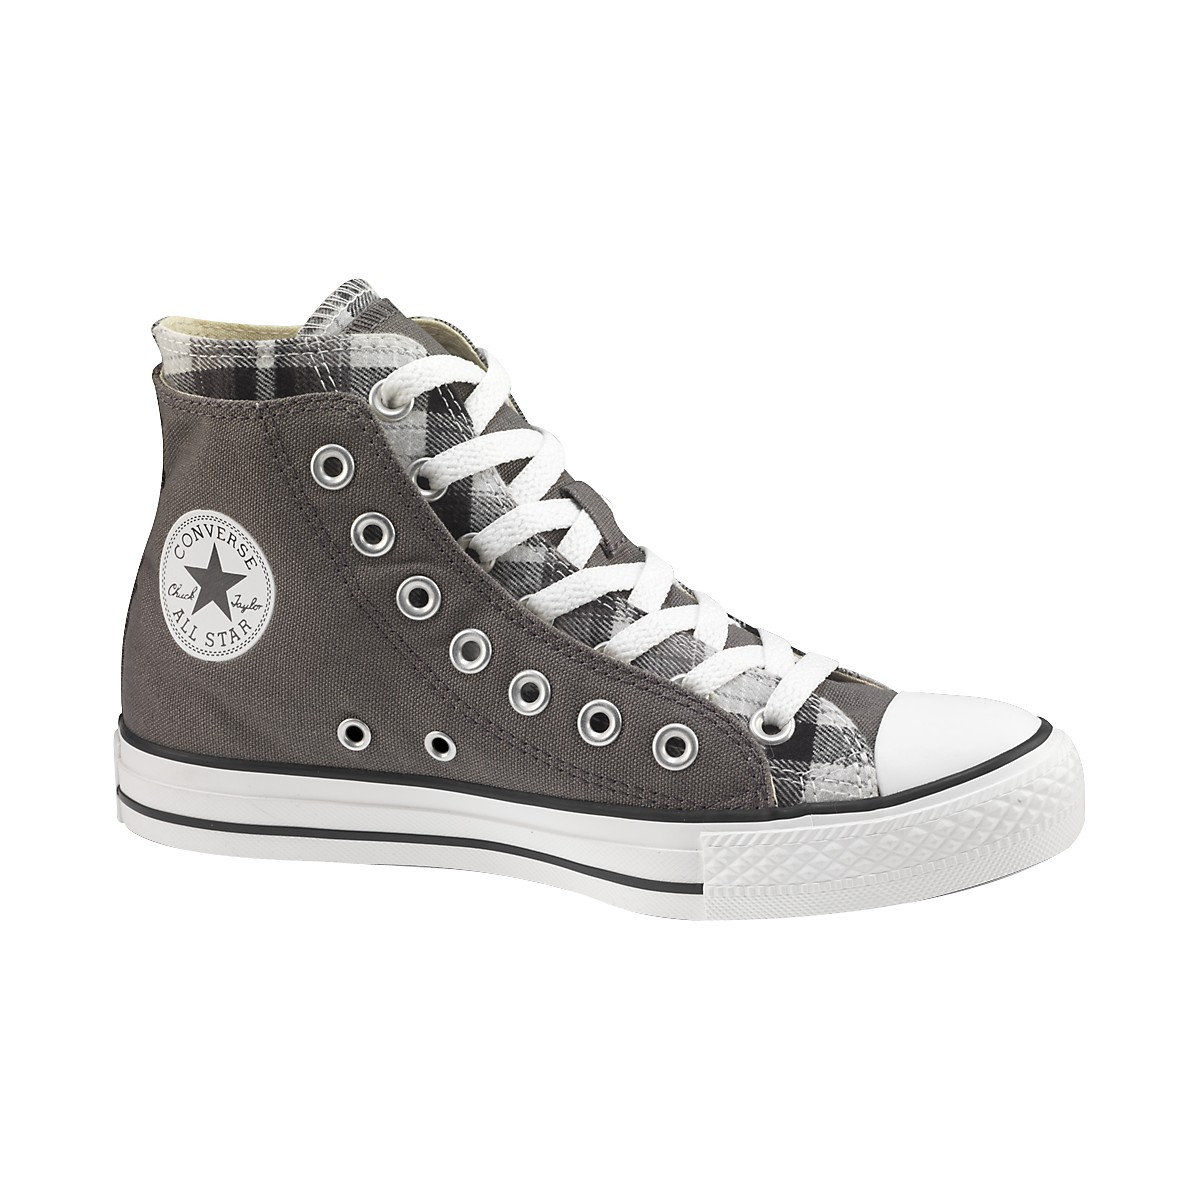 Chuck Taylor All Star High Top Double Upper Plaid Shoes